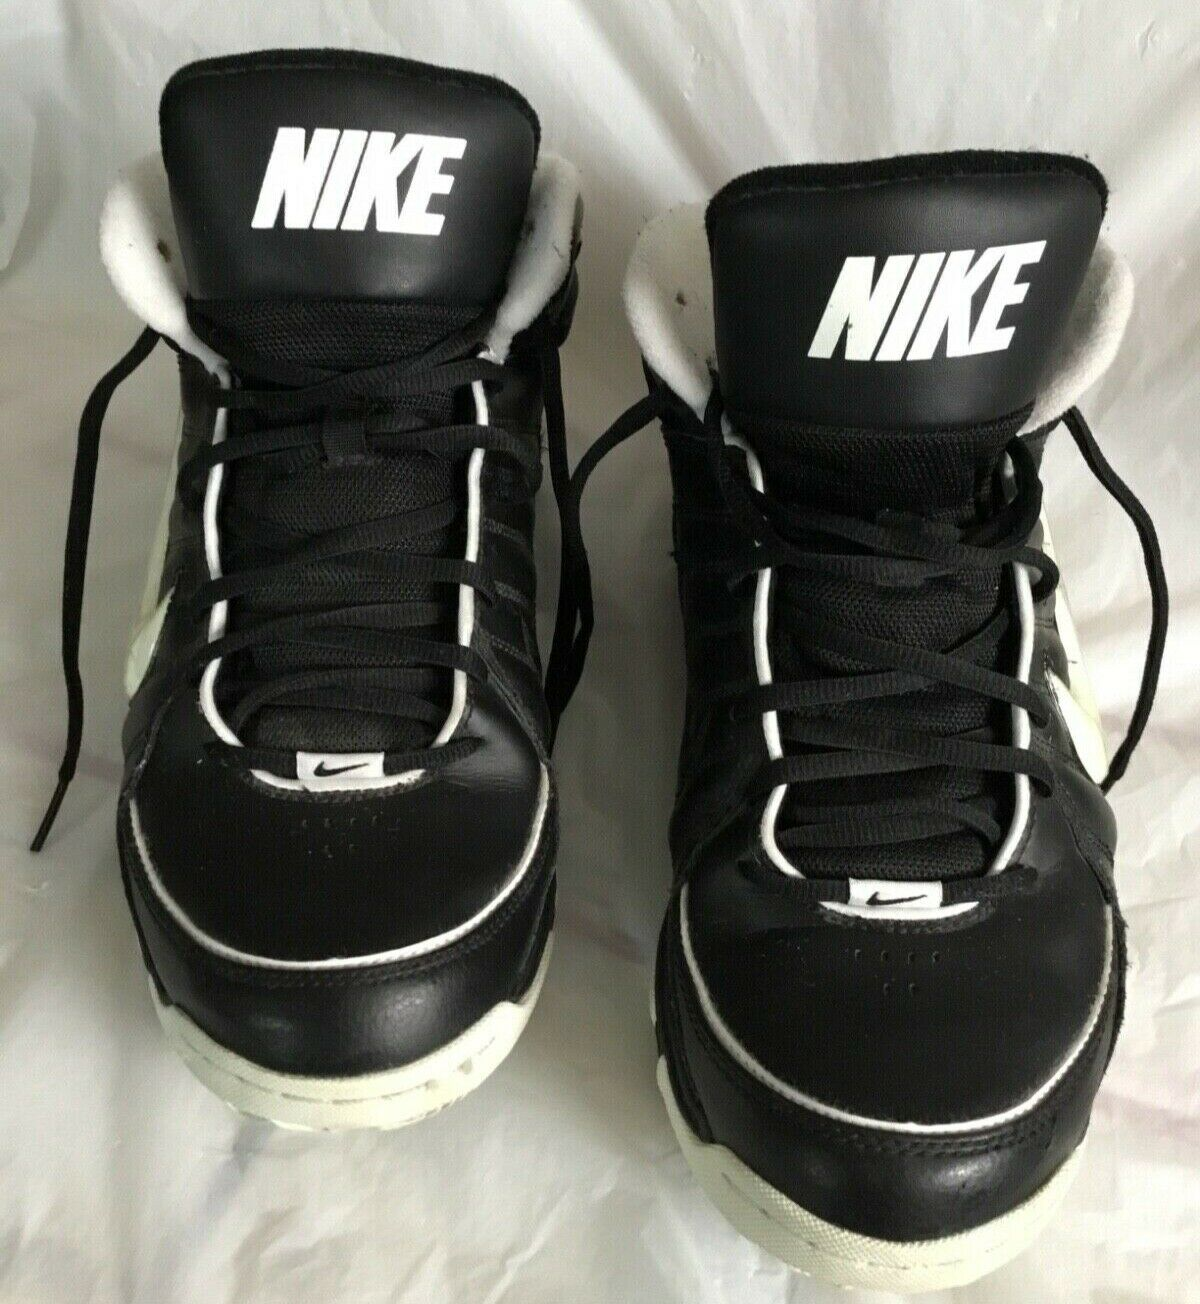 Nike Men's Size 11 Flex Air Black and White High Tops Pre-owned shoes